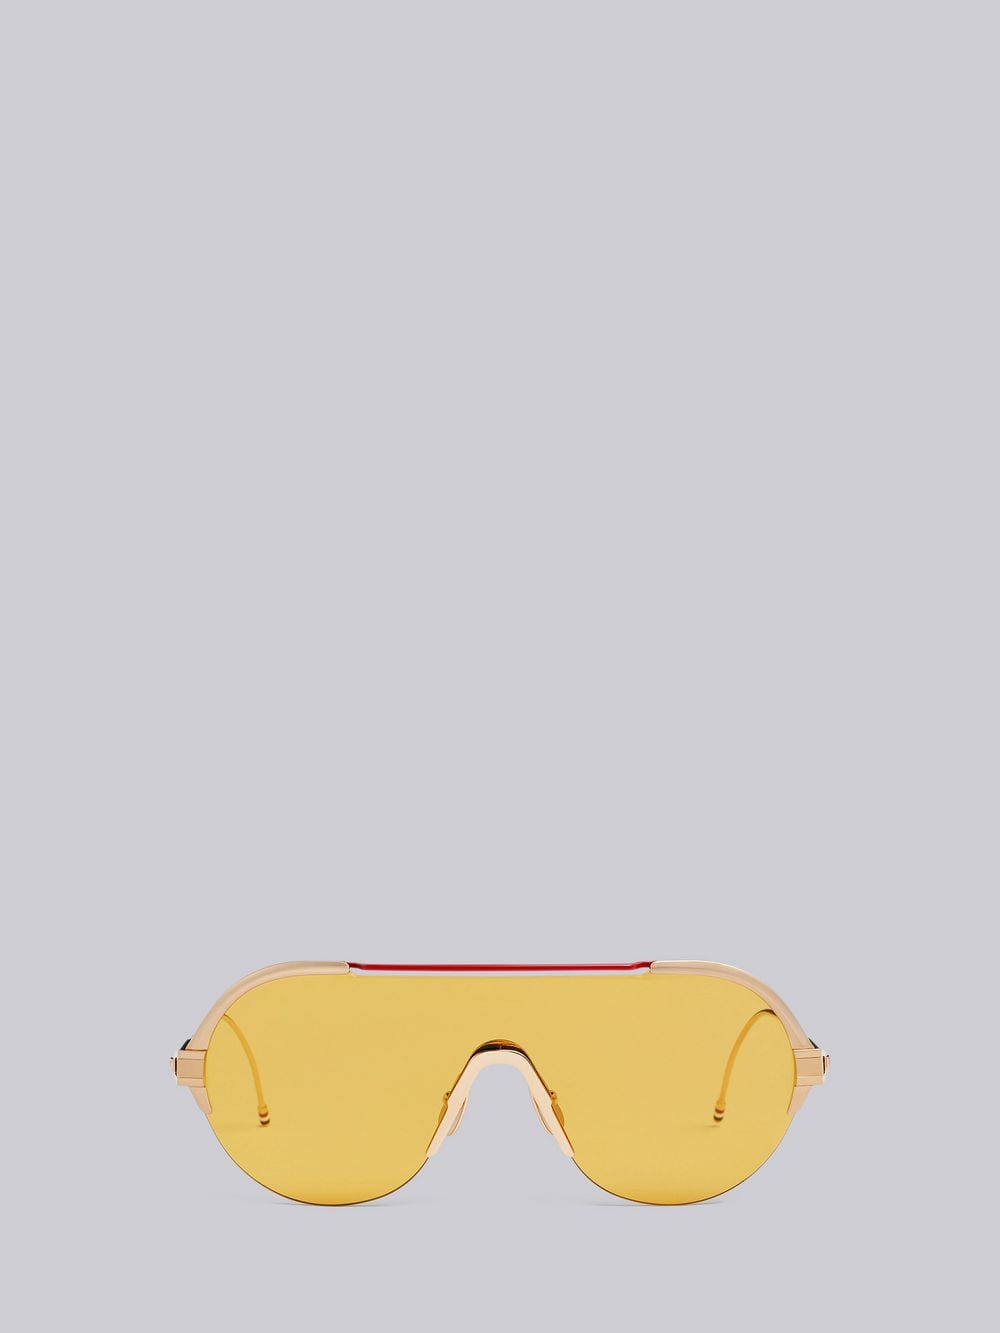 Aviator Shaped Sunglasses.jpg